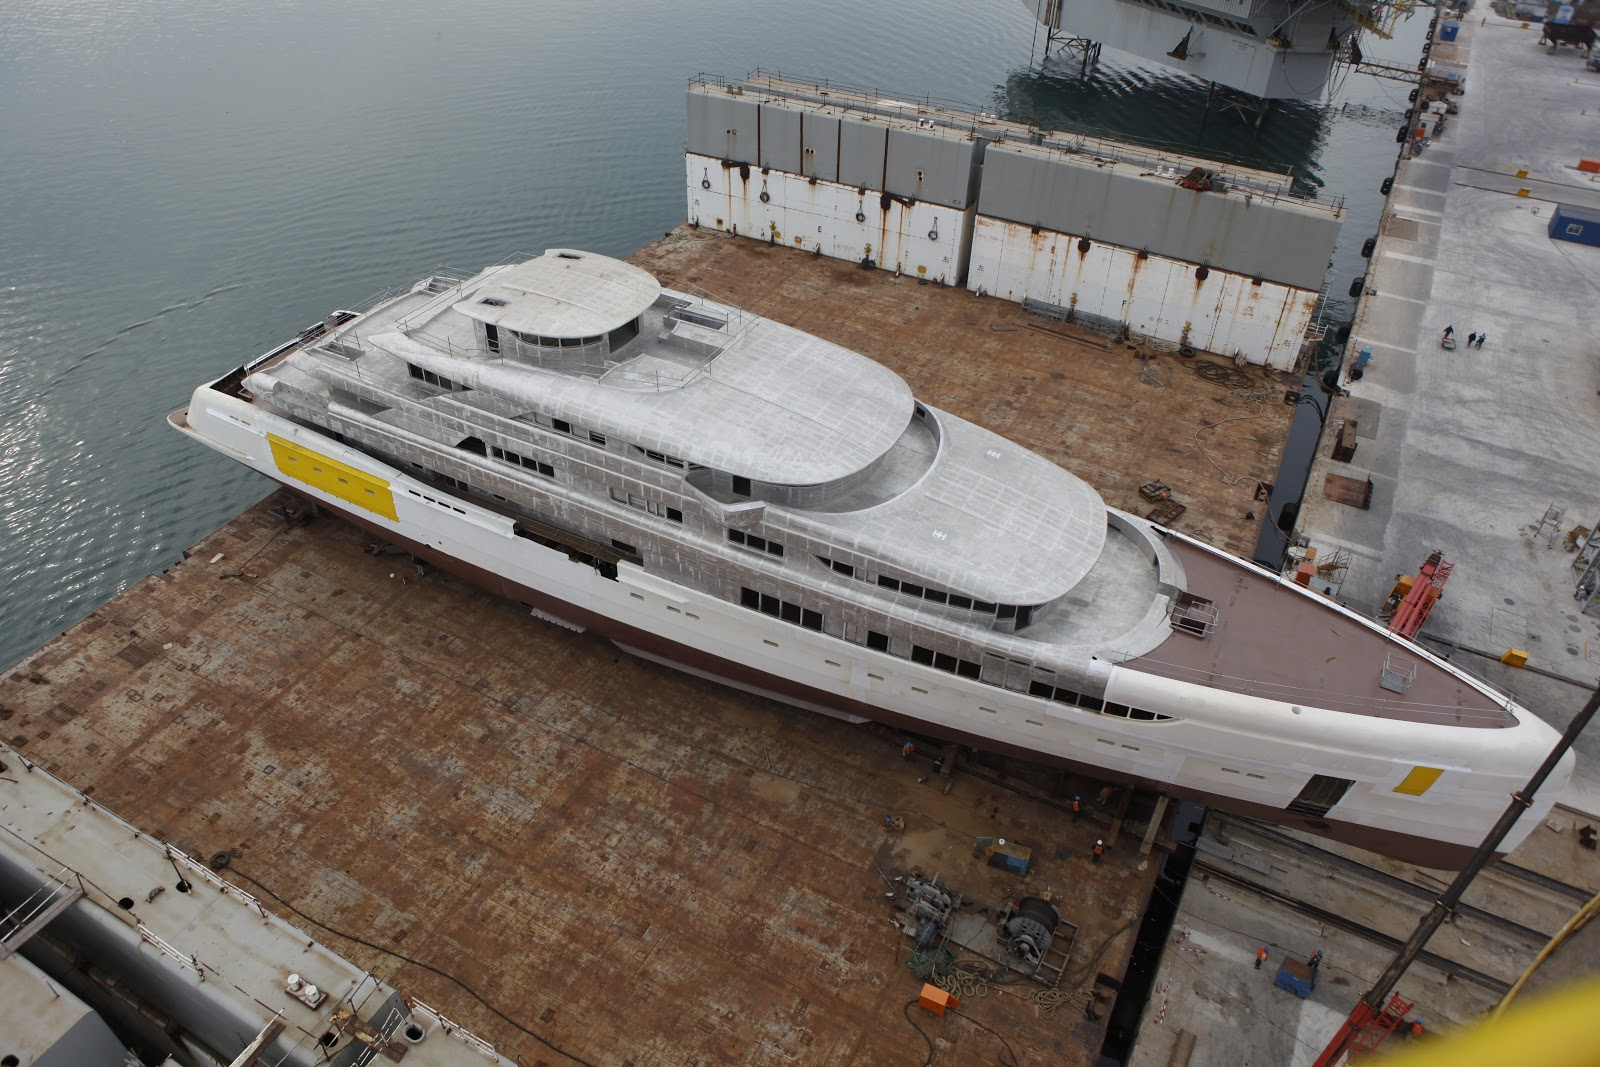 The 88m Motor Yacht Illusion Is Listed For Sale With